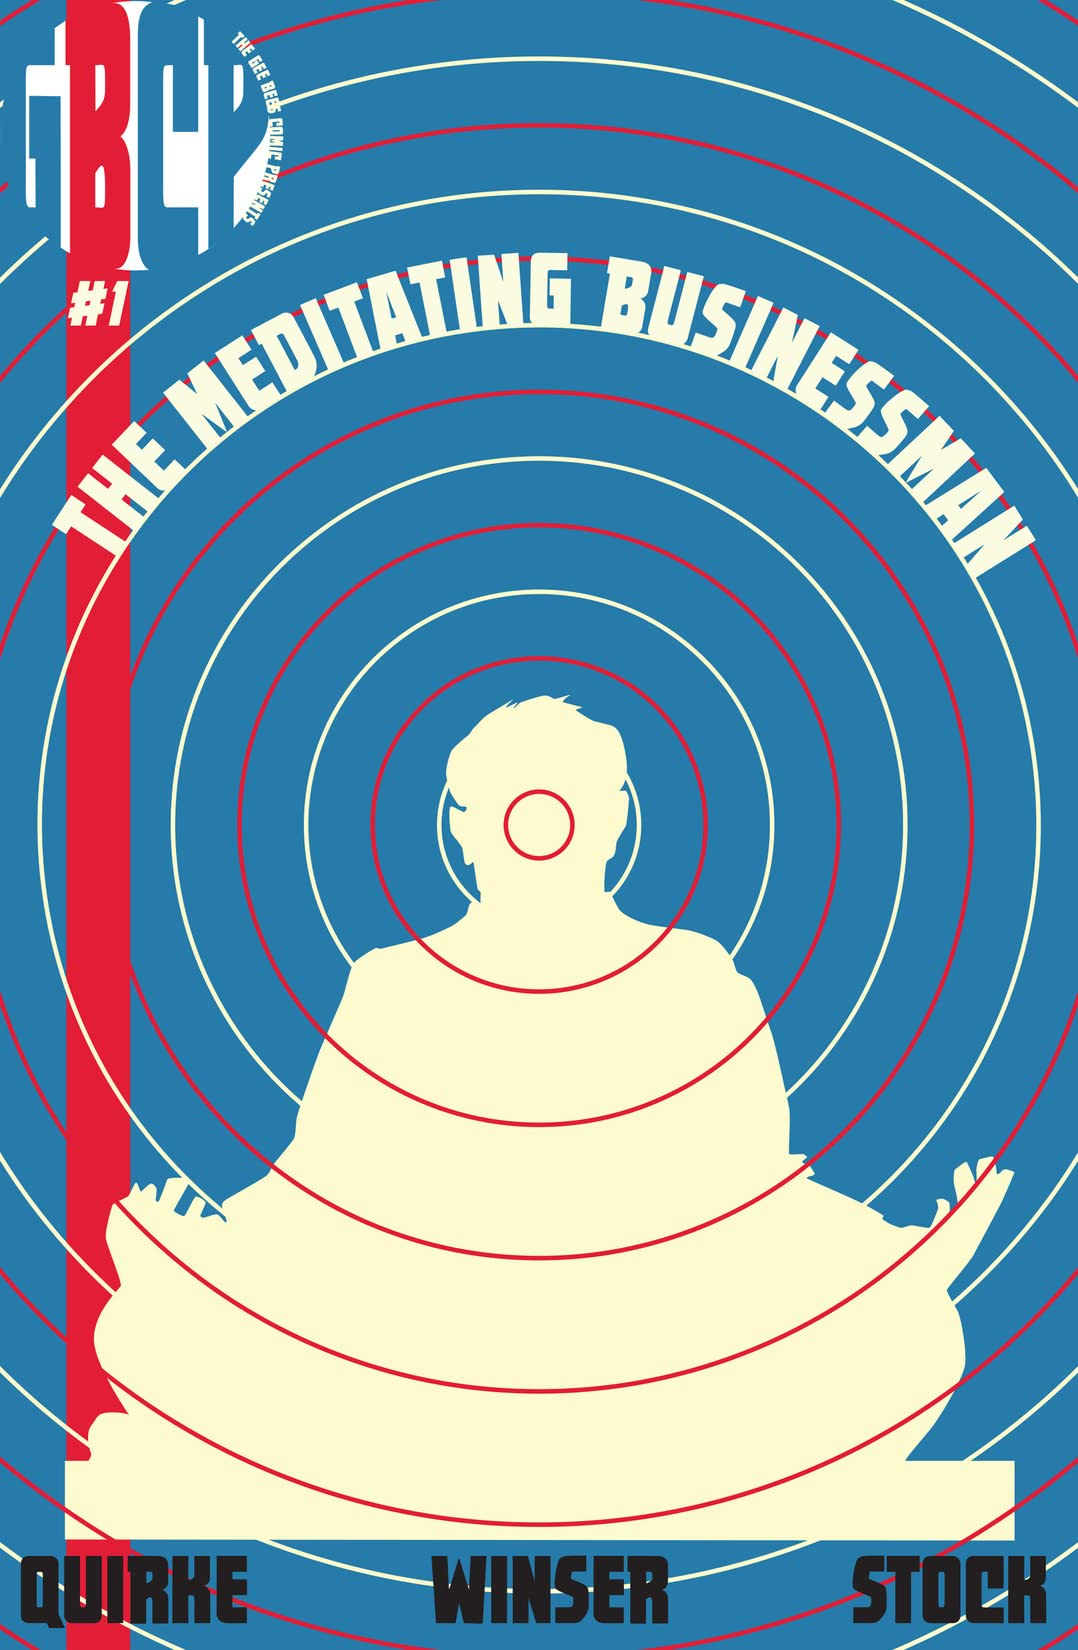 The Meditating Businessman #1